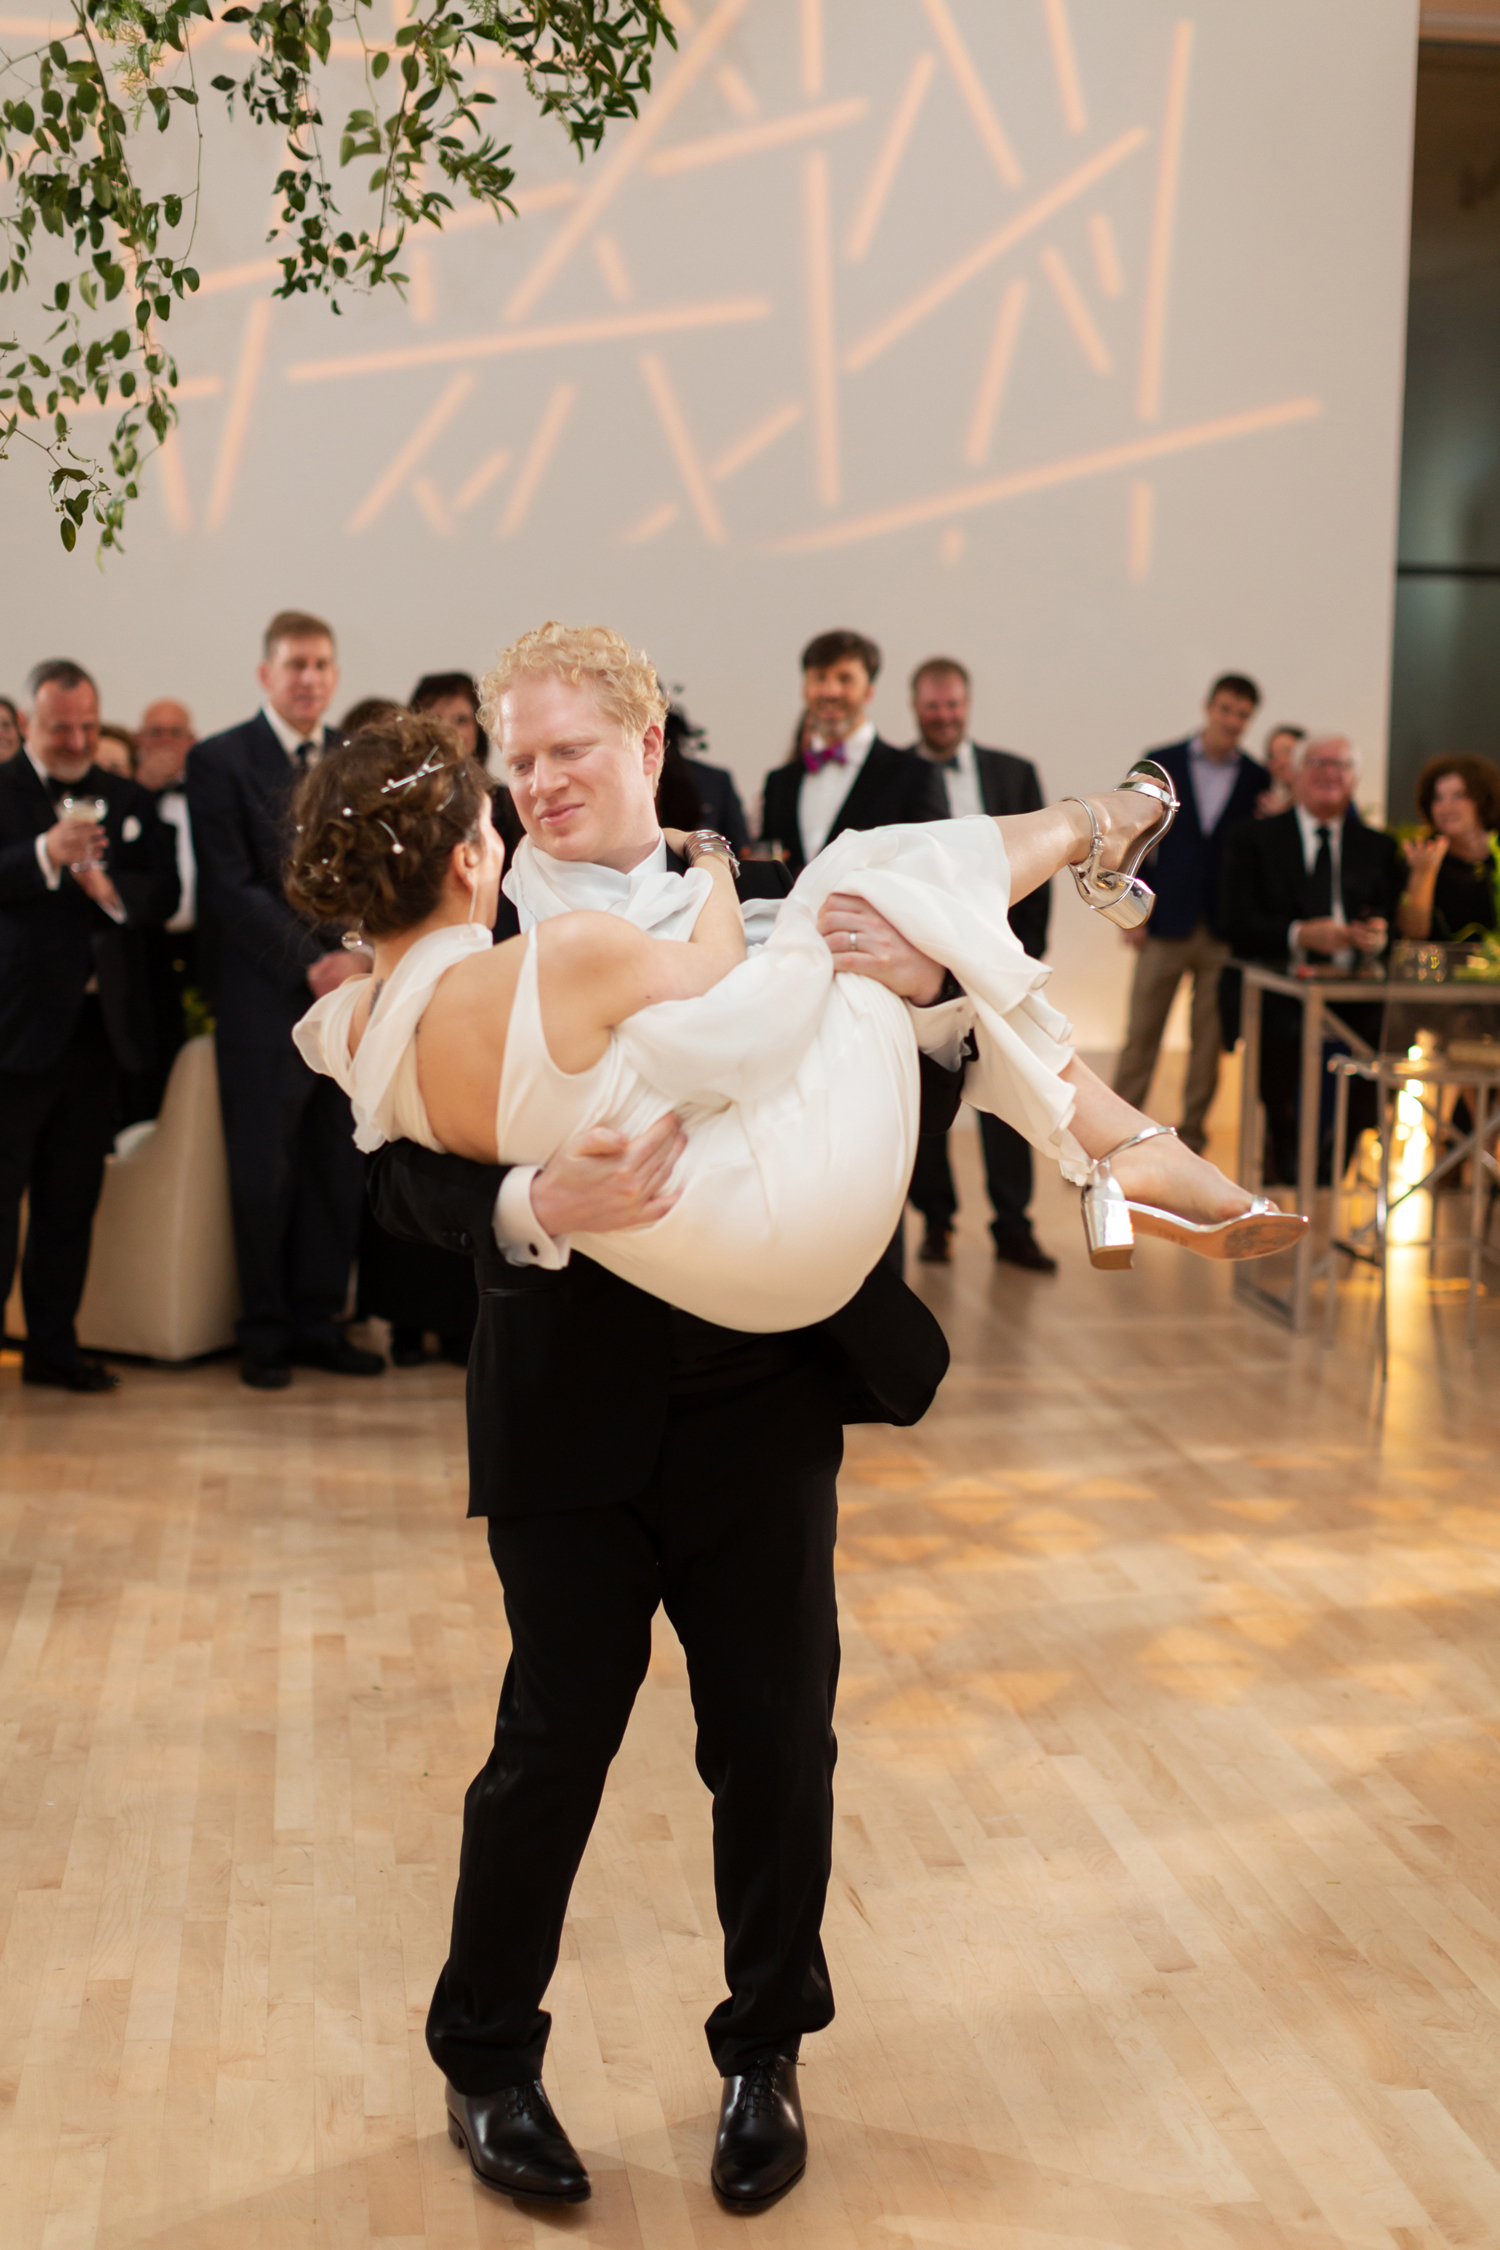 sfmoma-wedding-photography-preview-lilouette-19.jpg